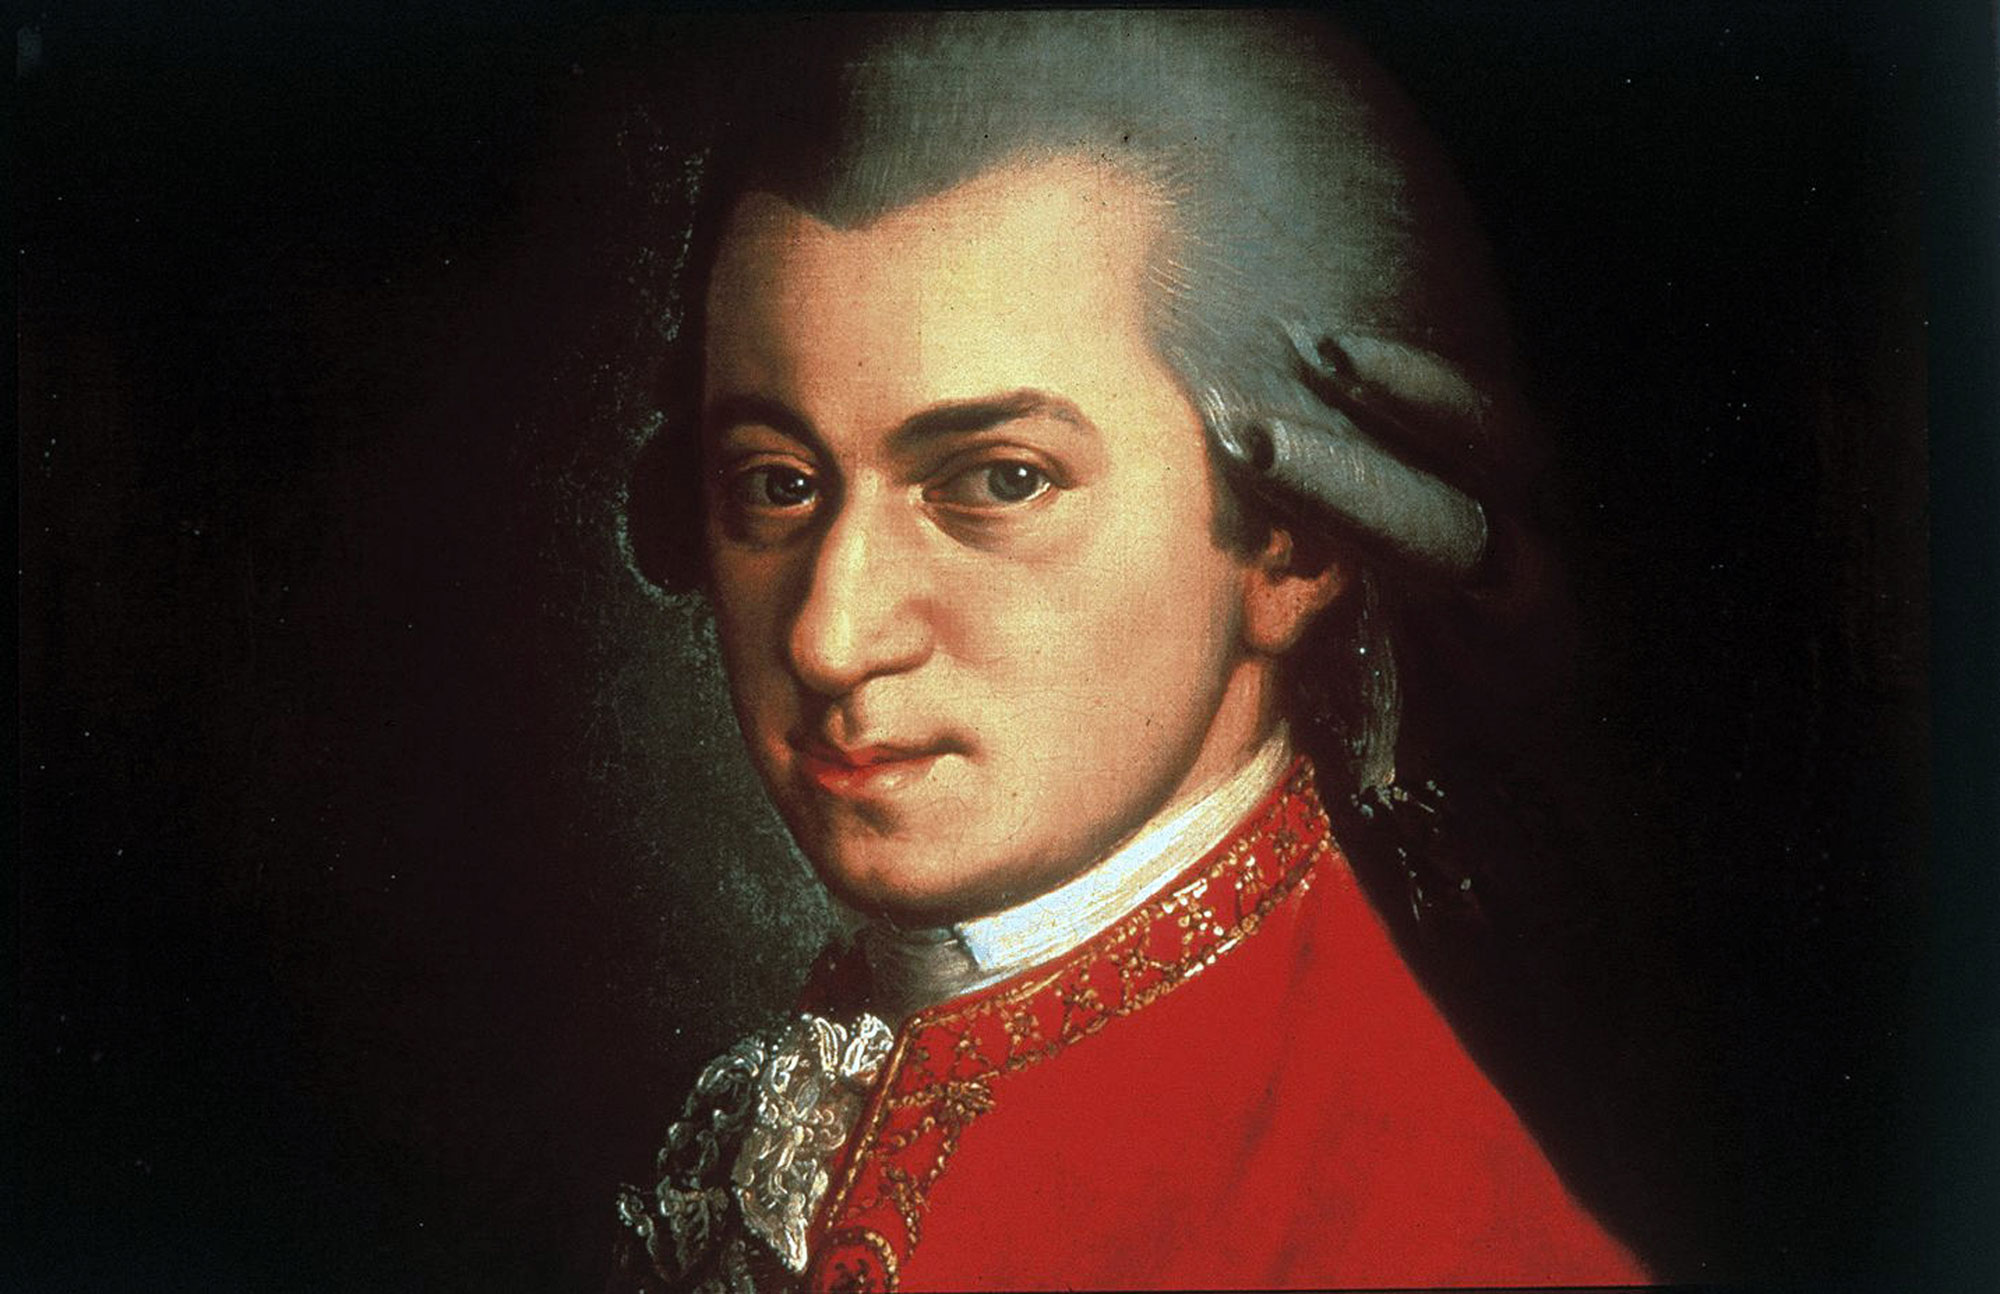 Portrait of Wolfgang Amadeus Mozart circa 1780 painted by Johann Nepomuk della Croce. GETTY IMAGES/Universal History Archive.